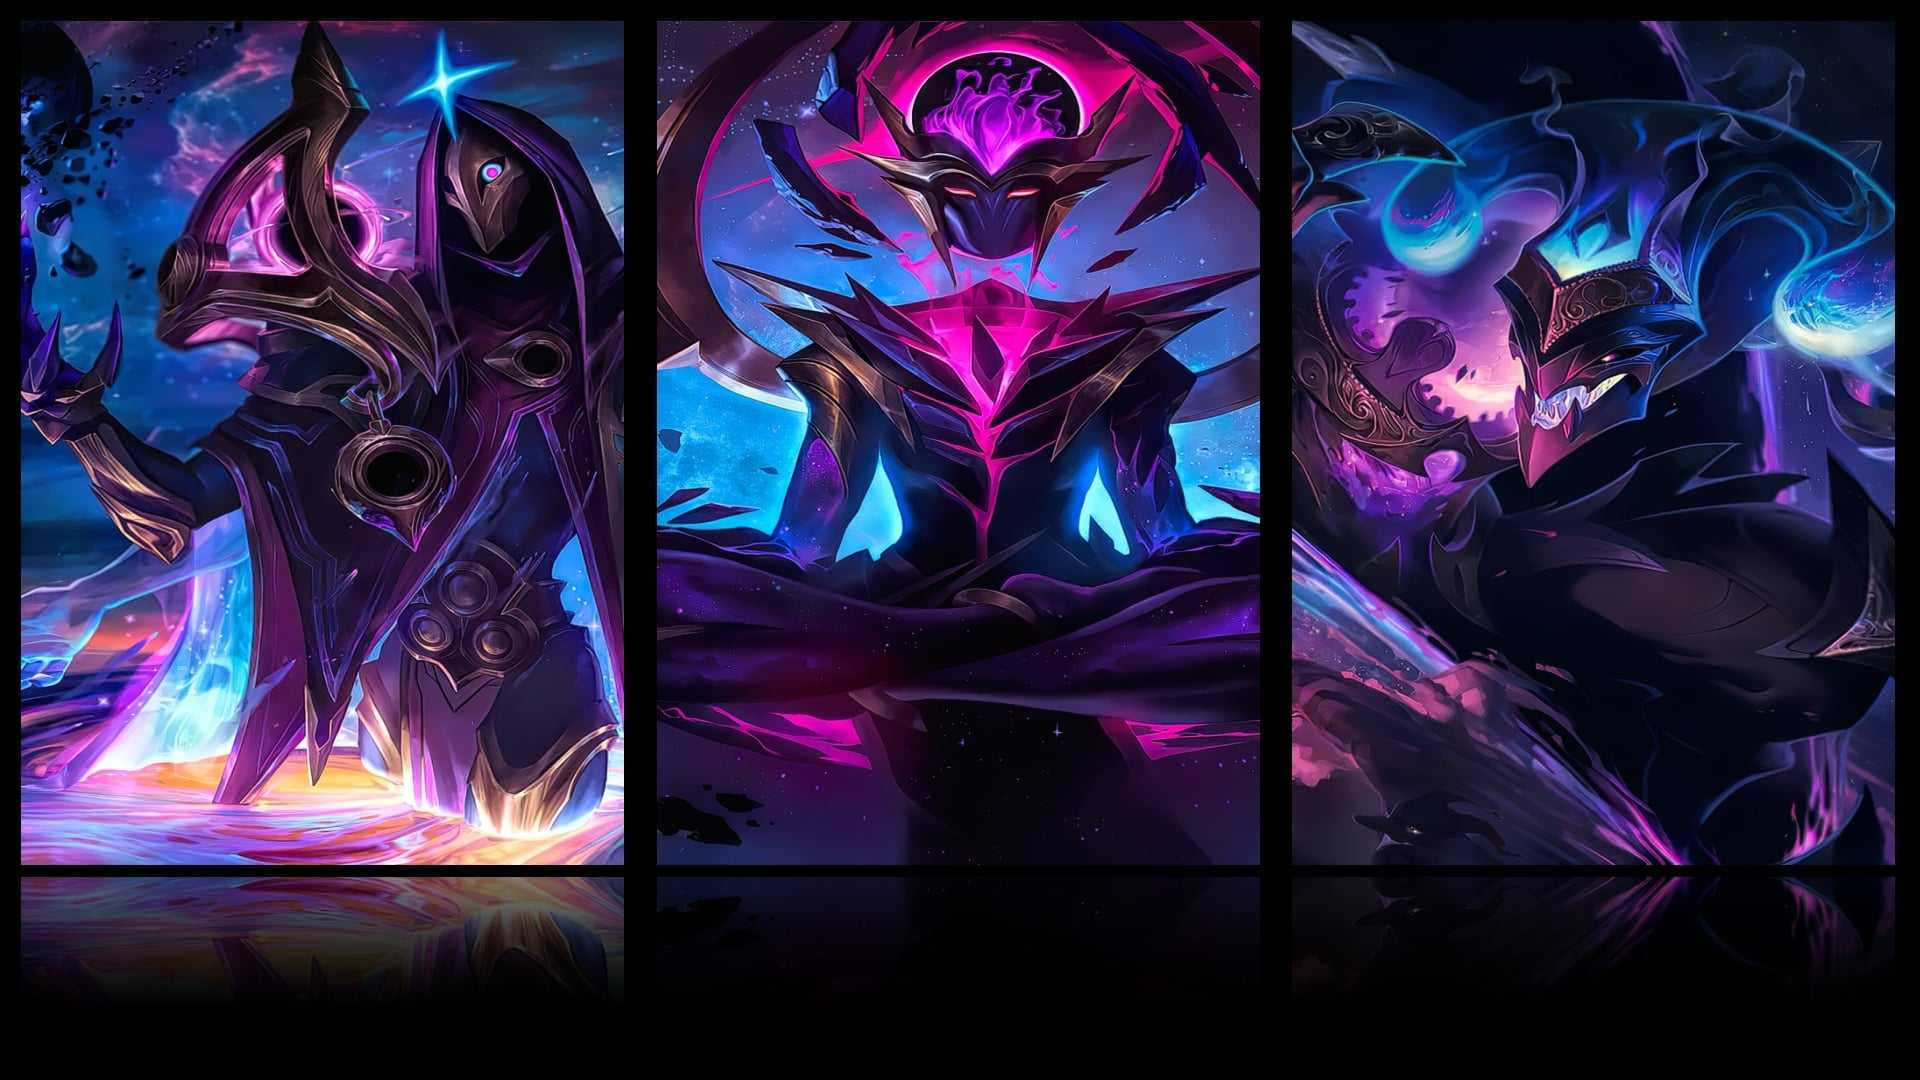 how many skins are in league, how many skins are there in league of legends, how many skins do i have, how many skins do i have league, how many skins do i have lol, Lol, lol how many skins do i have, skins